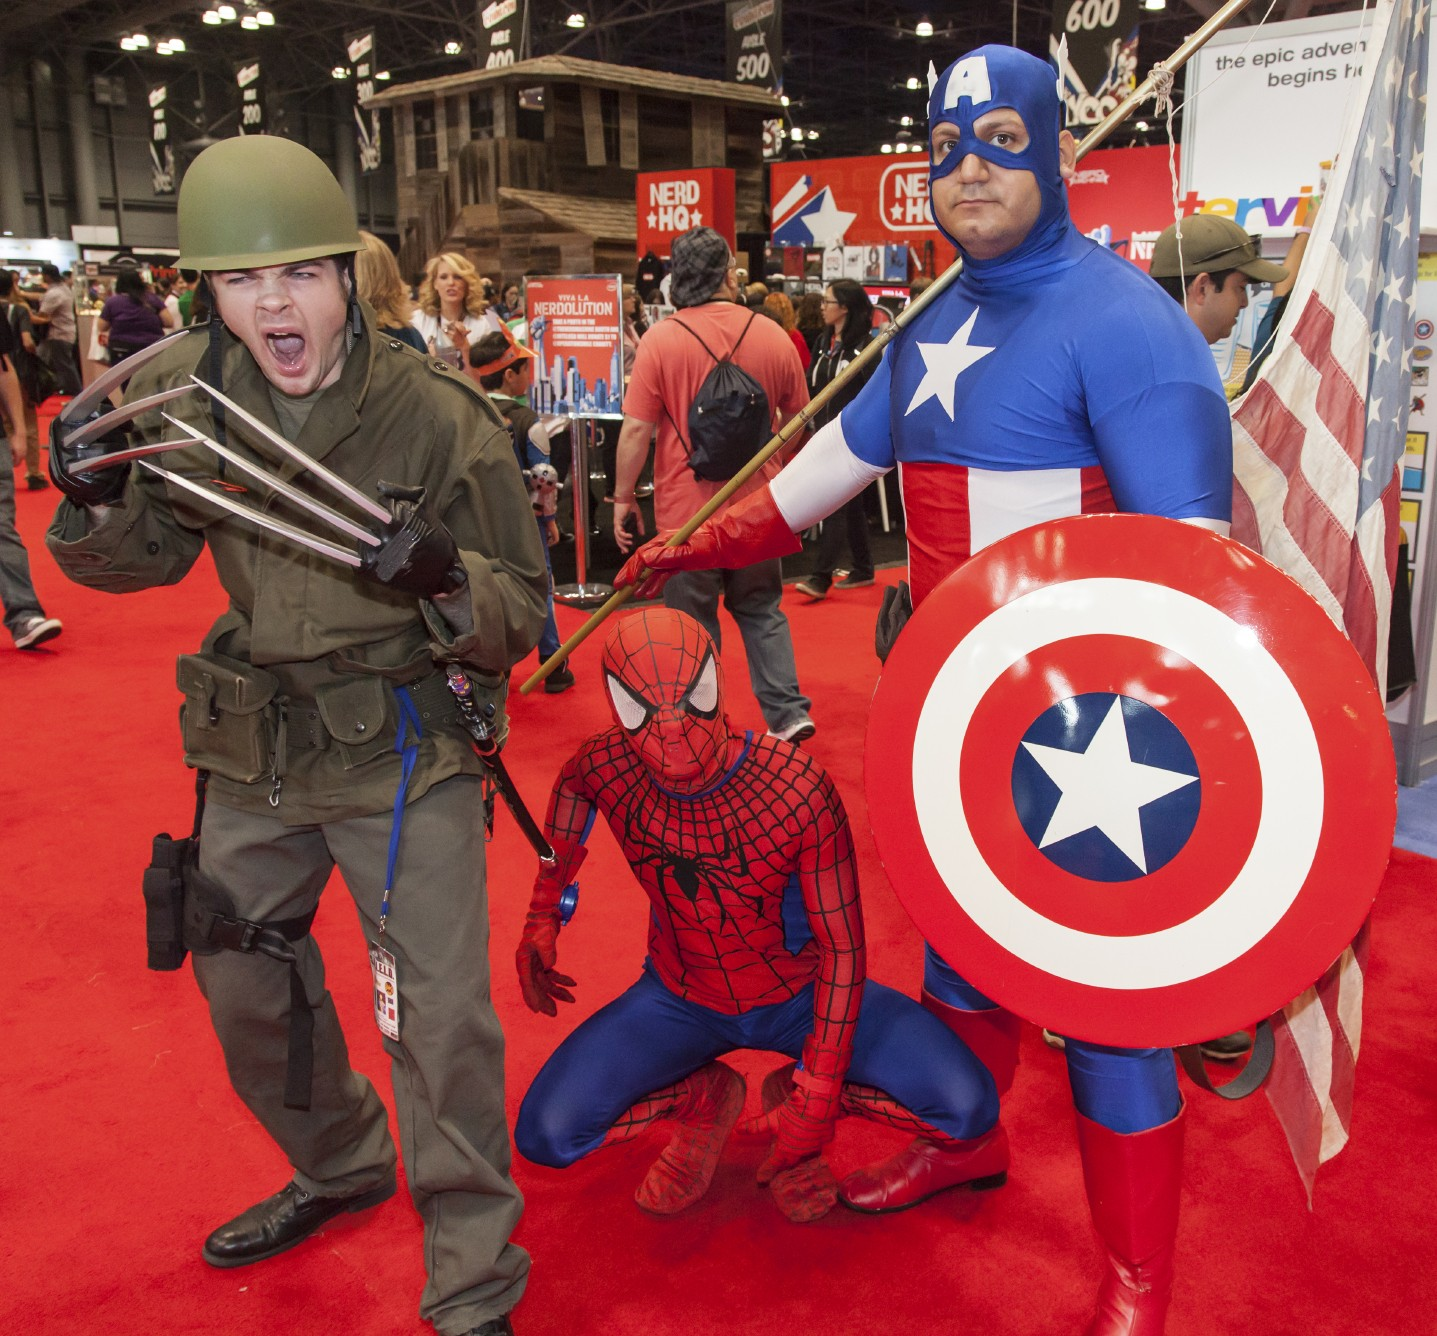 Free Comic Book Day Dubai: 10 Cool Things To See At RI Comic Con